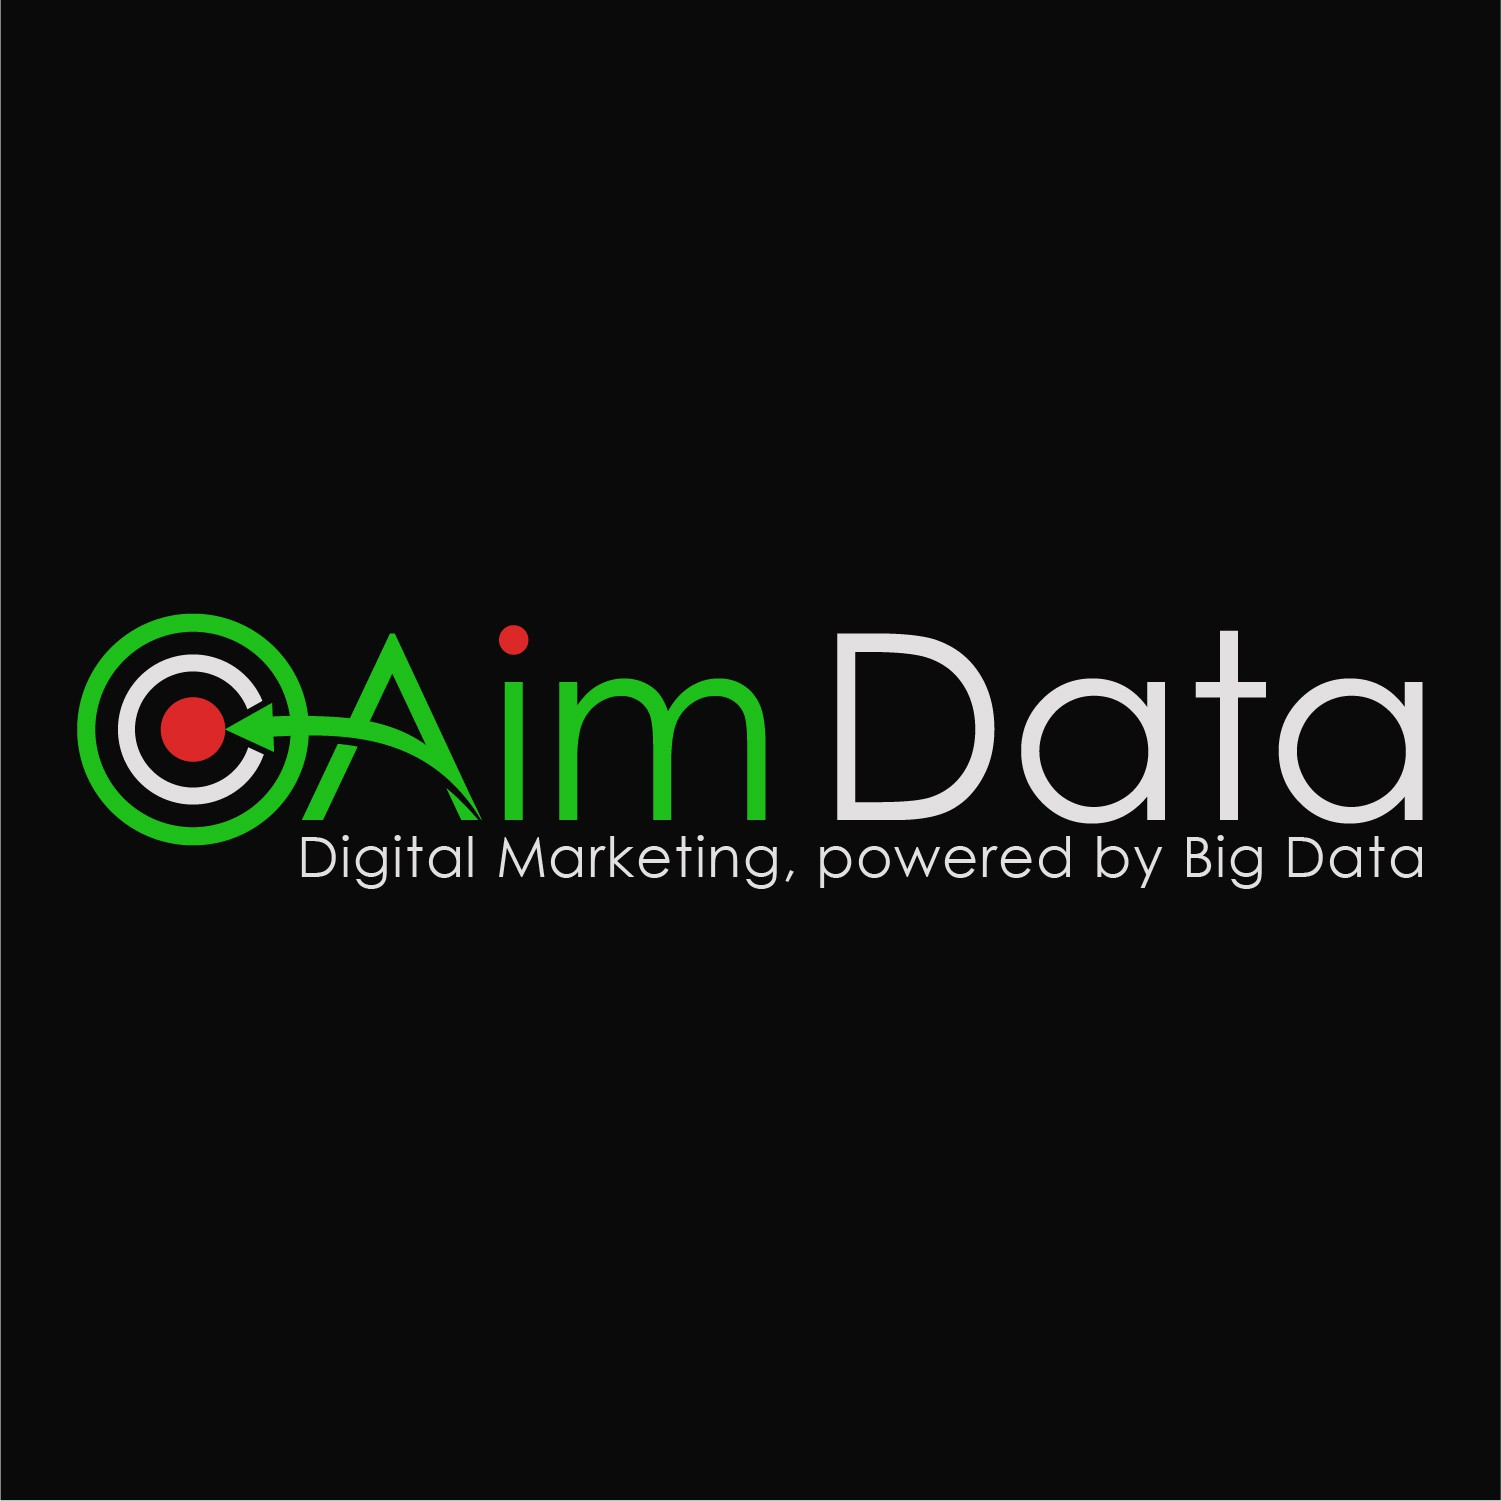 """Aim Data needs a powerful logo that people will see and say """"cool logo, I know exactly what they do"""""""